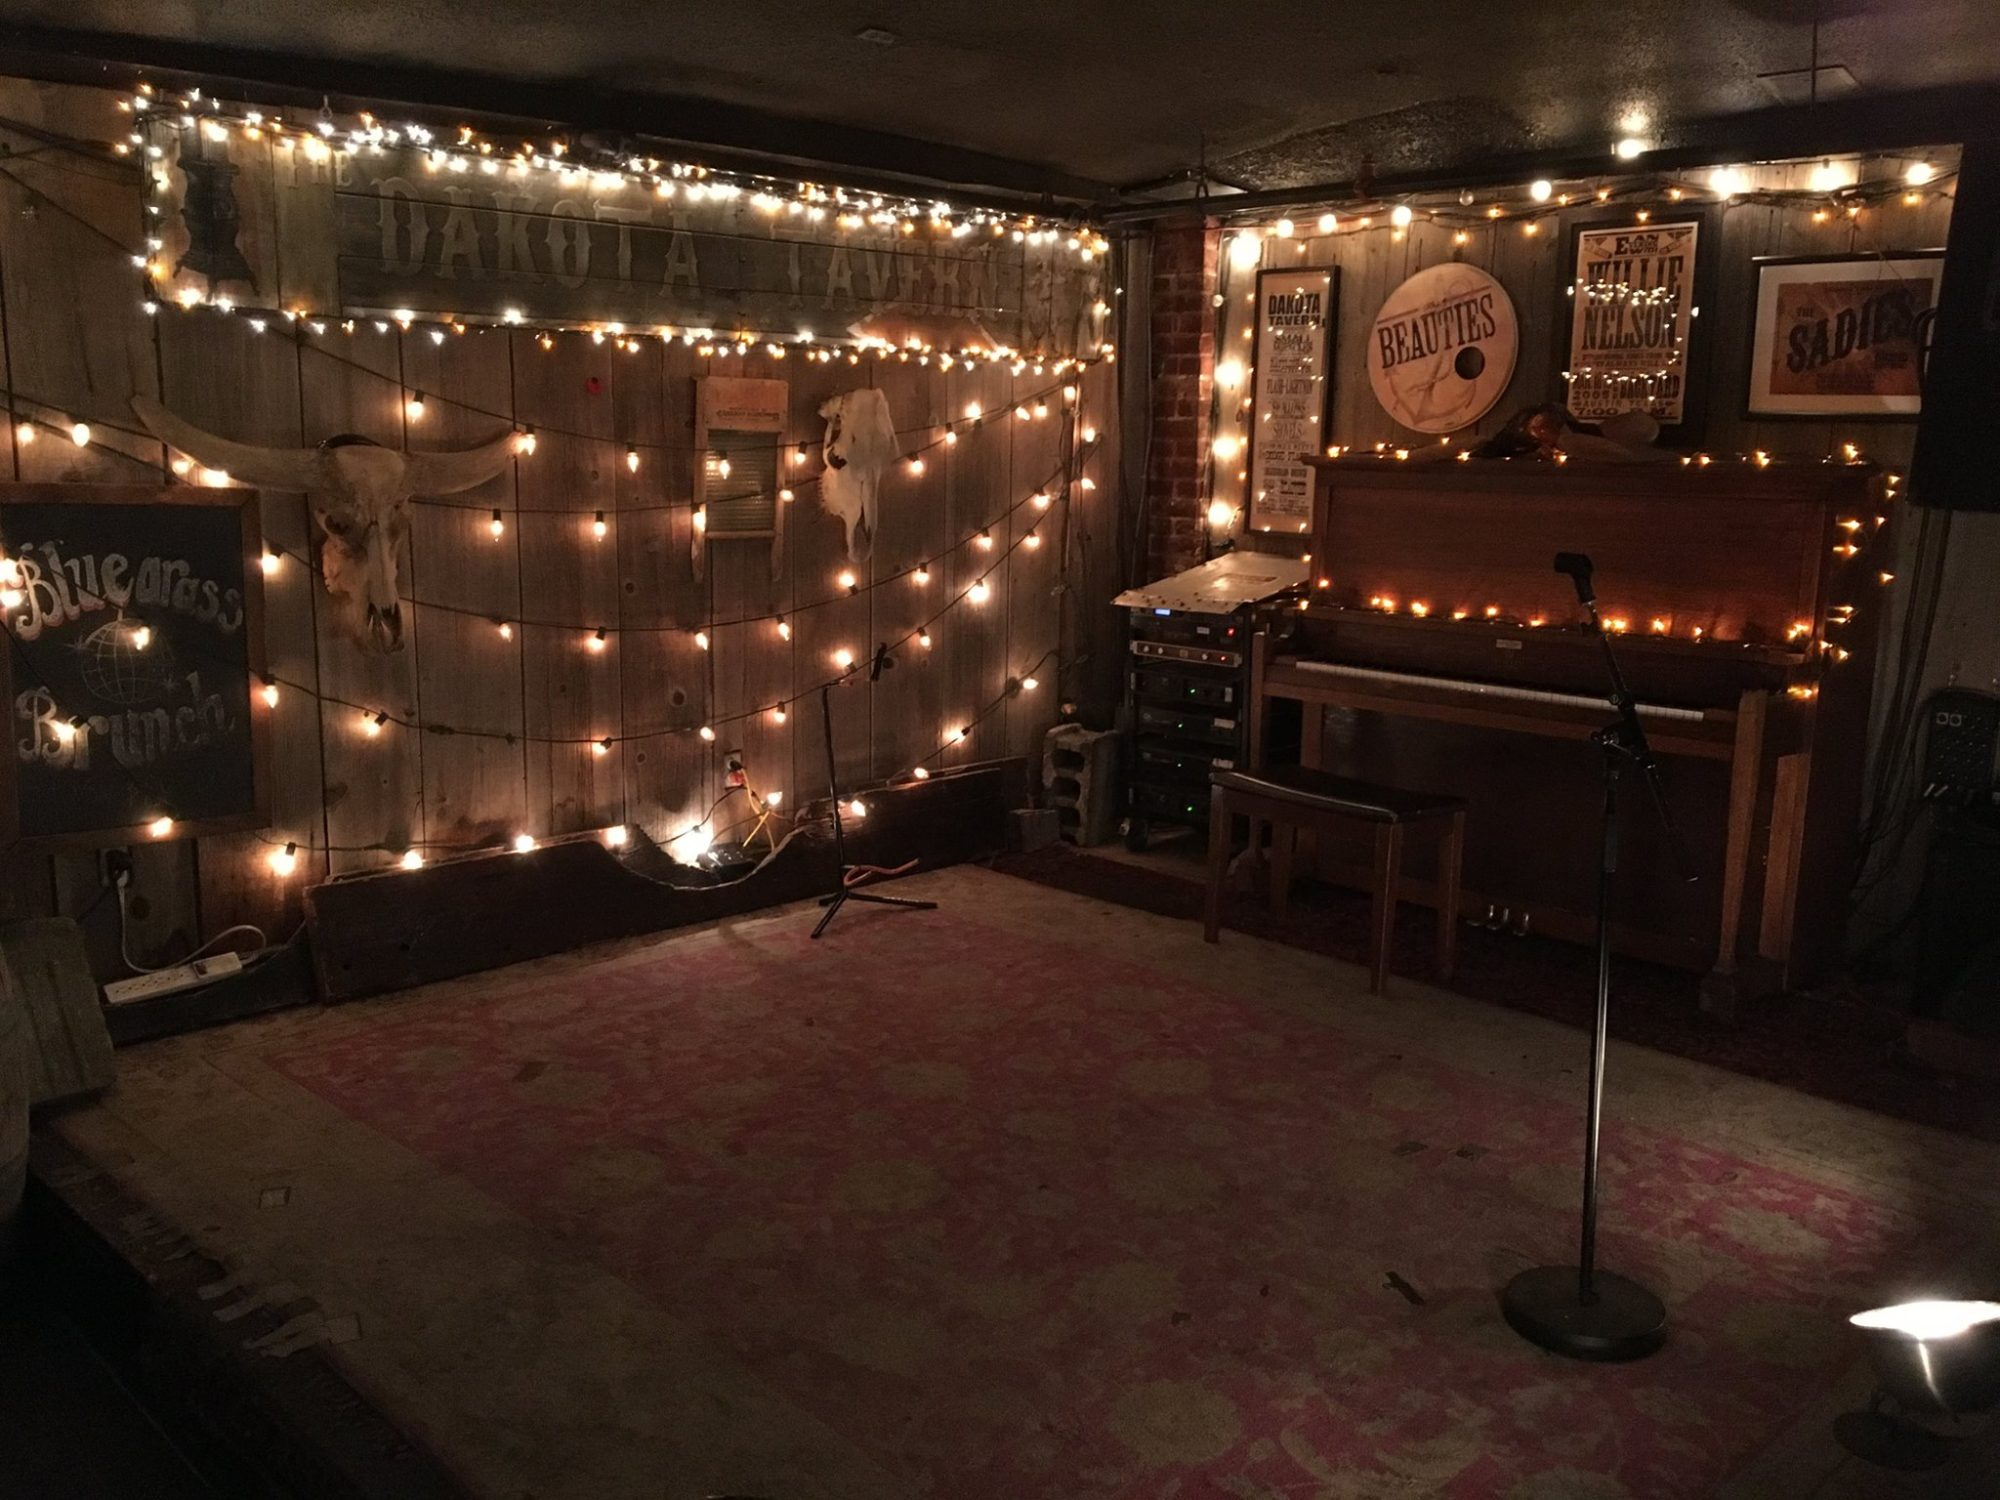 Live Music in Toronto: Magical lights decorate the stage at The Dakota Tavern.